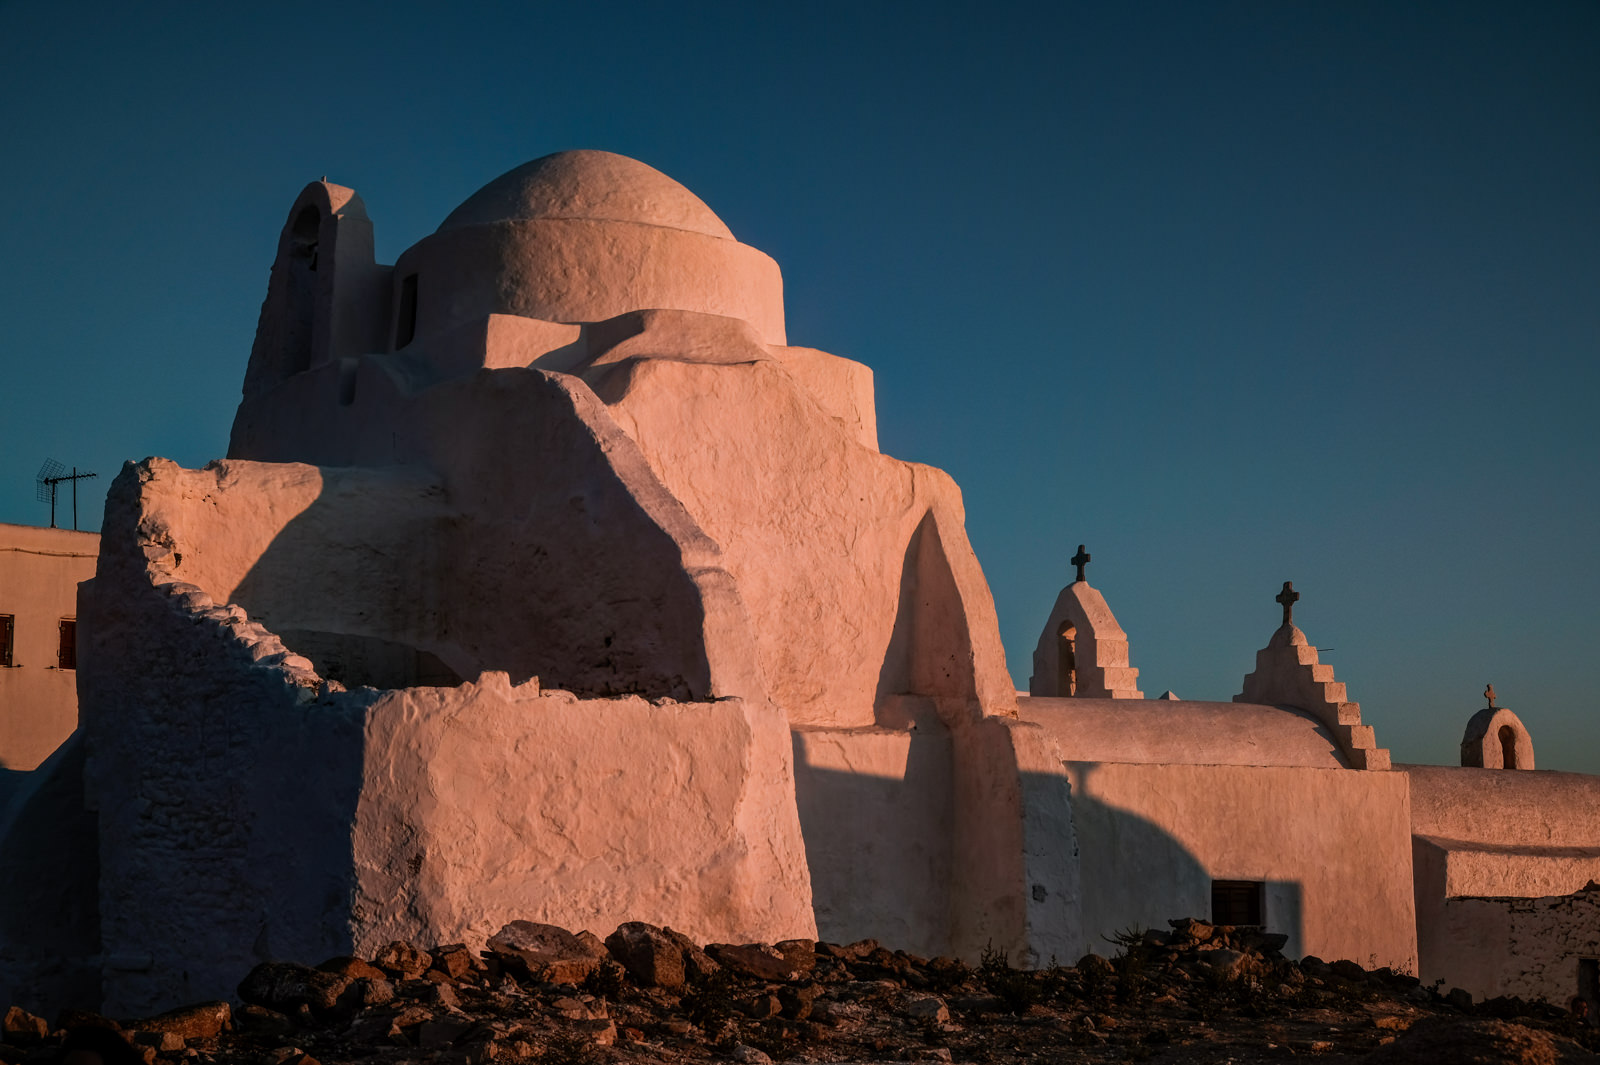 Sunset paints the Church of Panagia Paraportiani pink